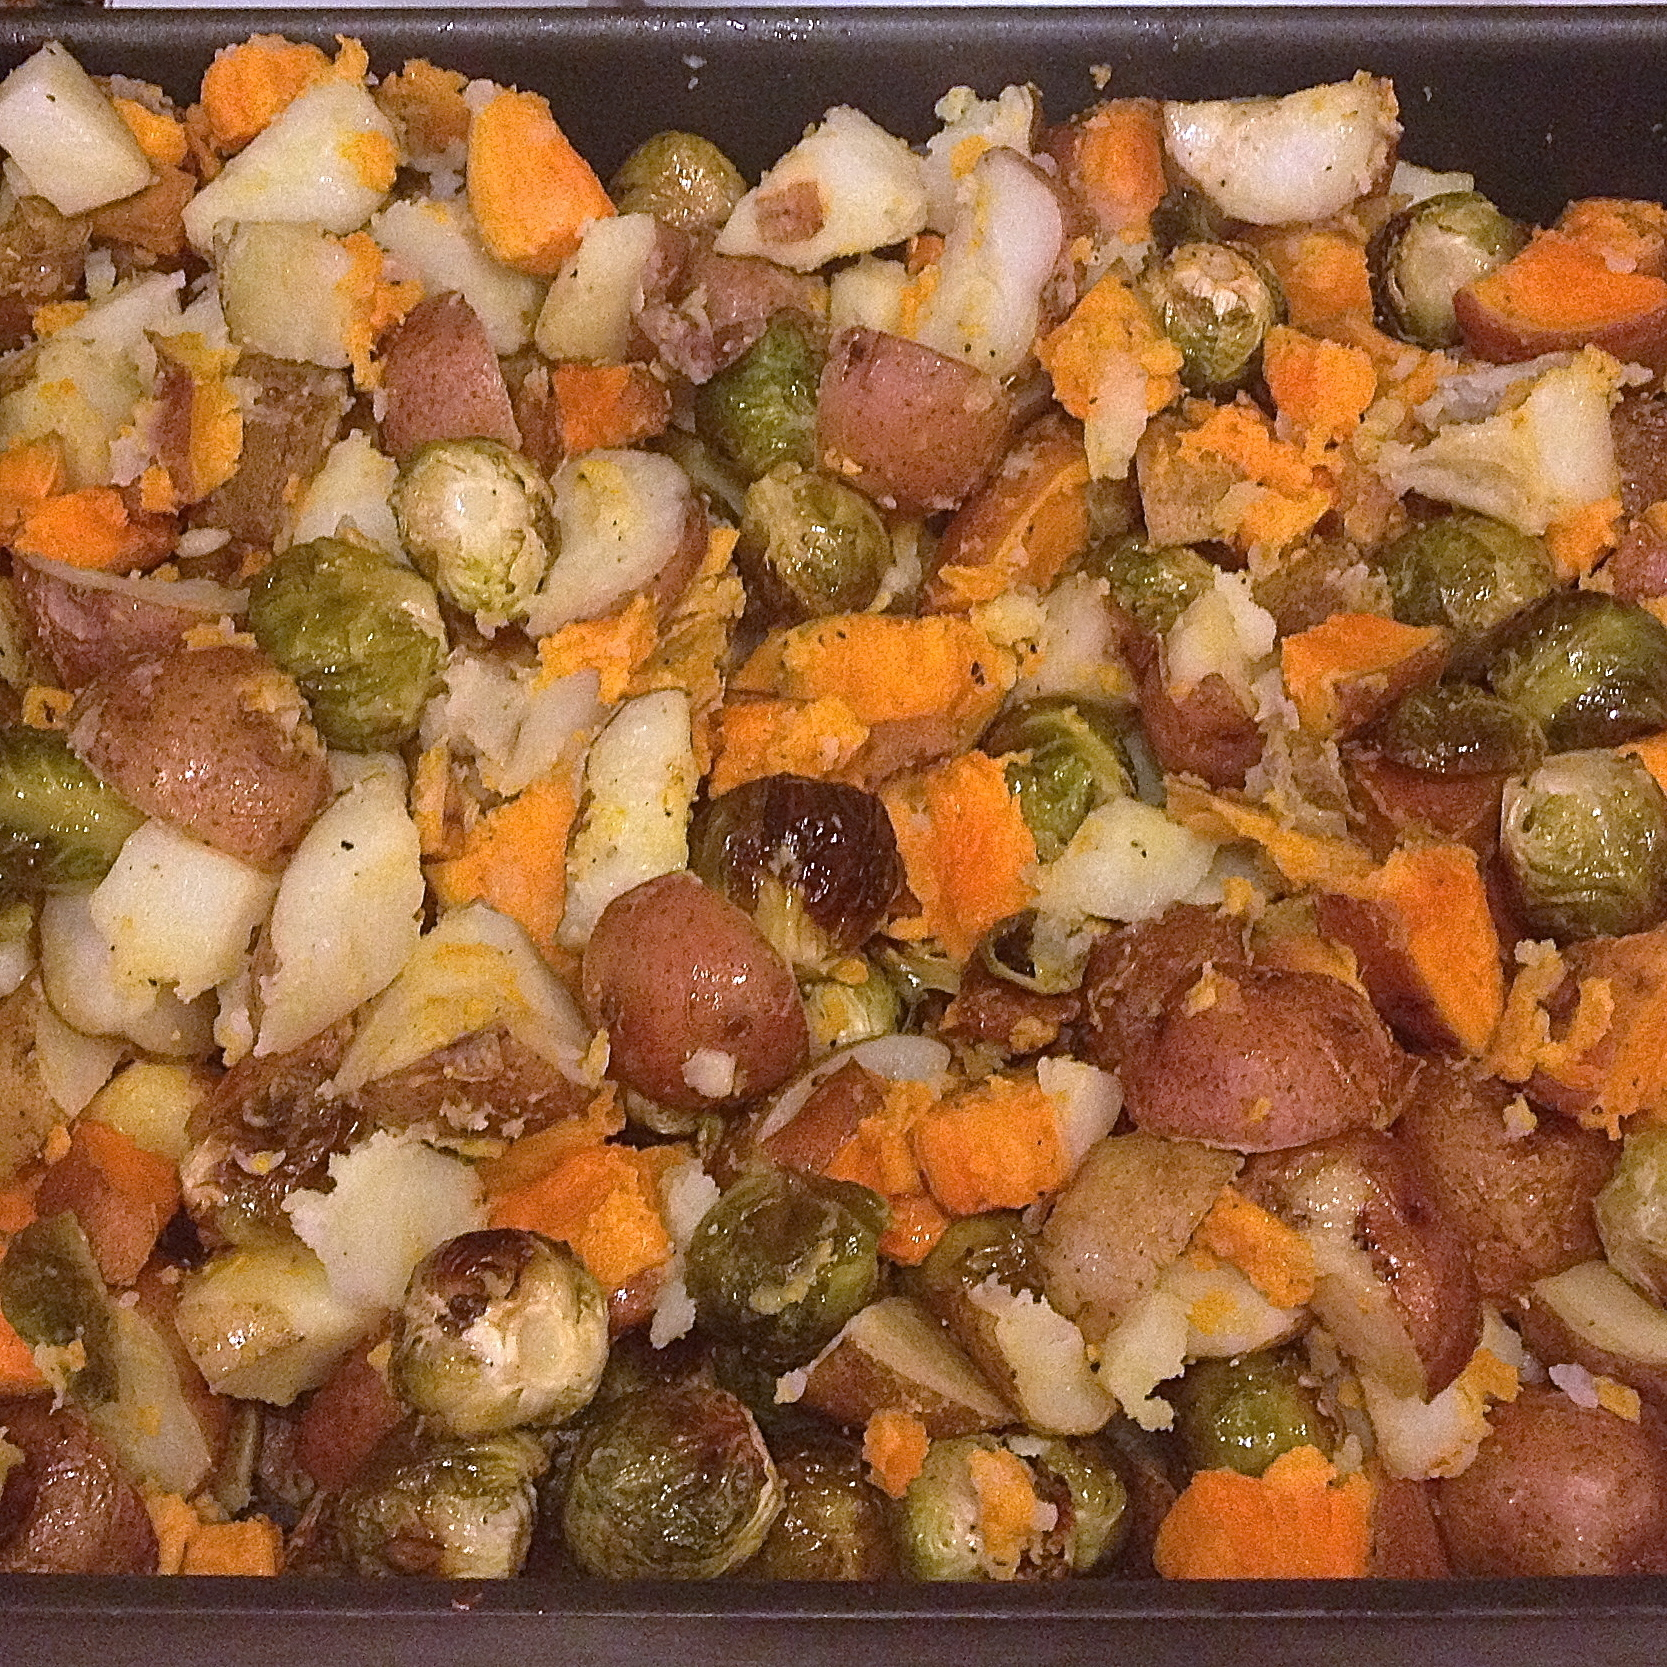 Roasted Potatoes and Brussel Sprouts